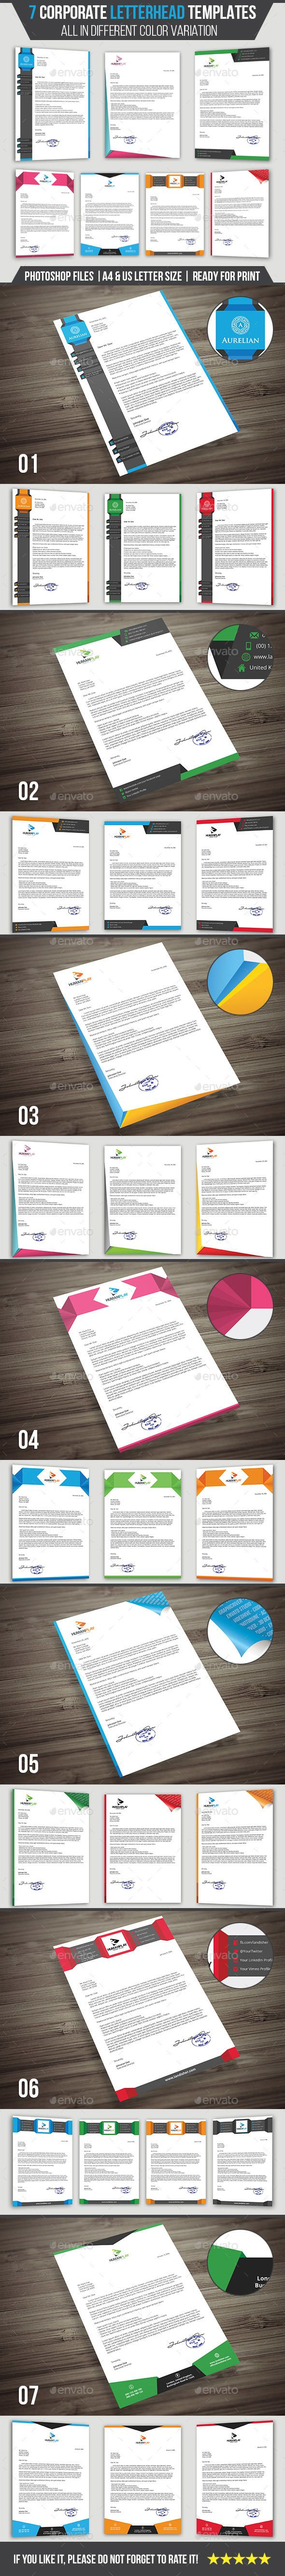 7 Corporate Letterhead Templates Pack